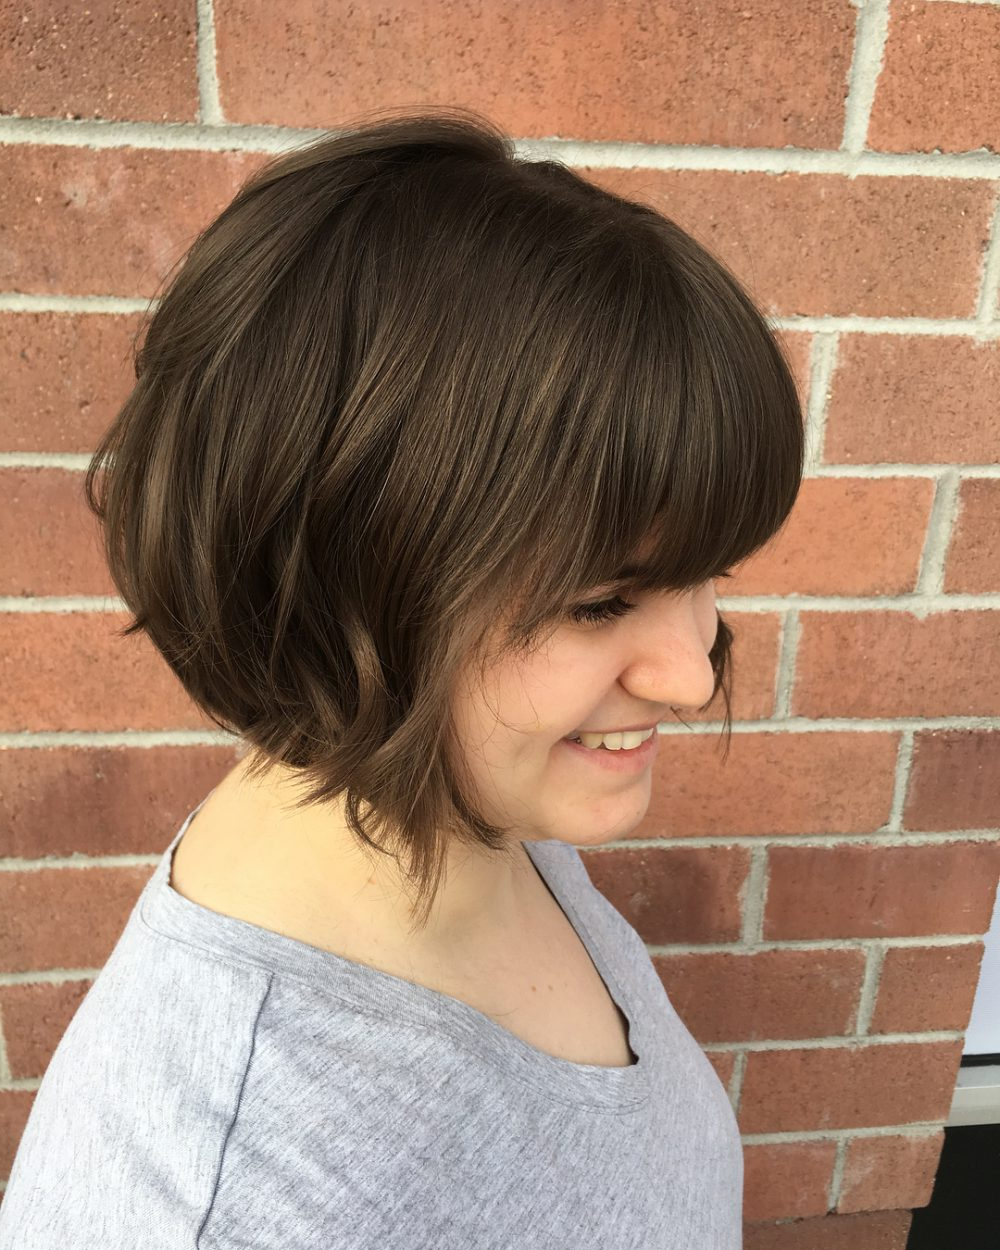 34 Greatest Short Haircuts And Hairstyles For Thick Hair For 2018 Intended For Short Haircuts For Thick Hair Long Face (View 8 of 25)